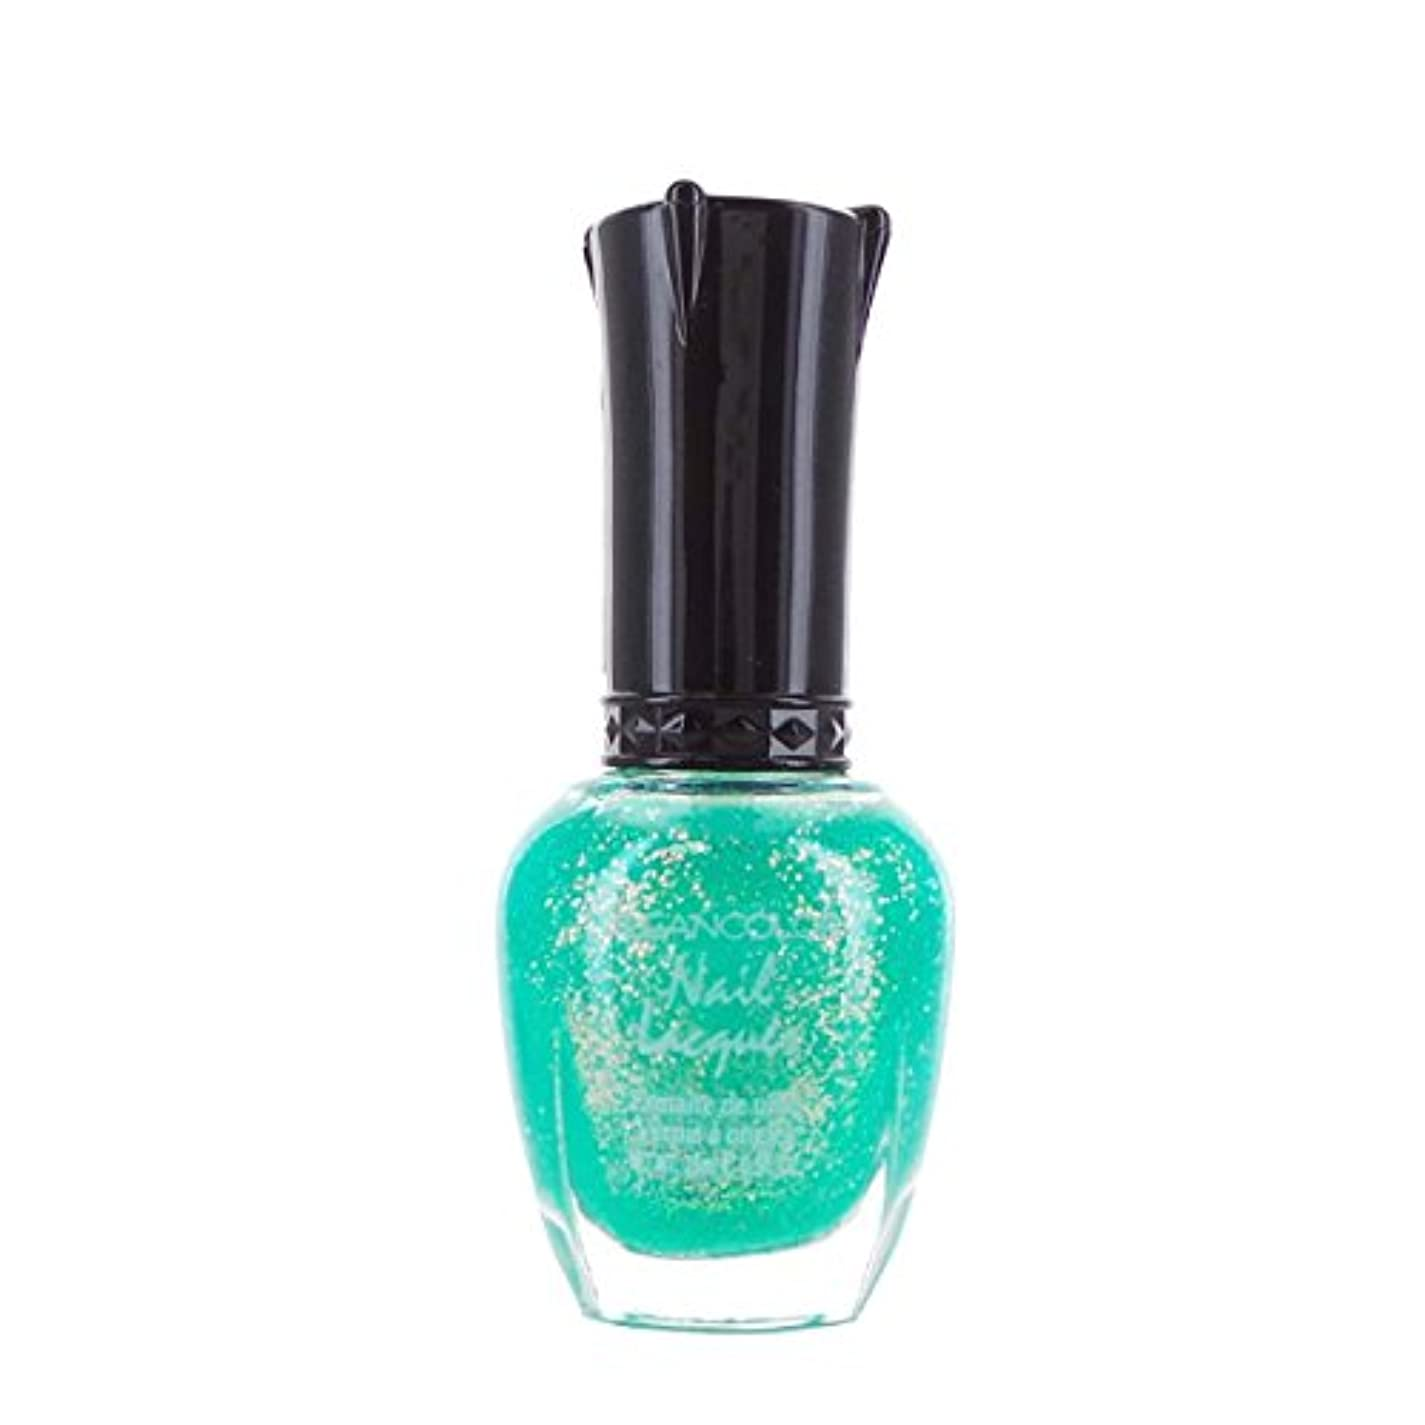 KLEANCOLOR Nail Lacquer 4 - Chunky Holo Teal (並行輸入品)